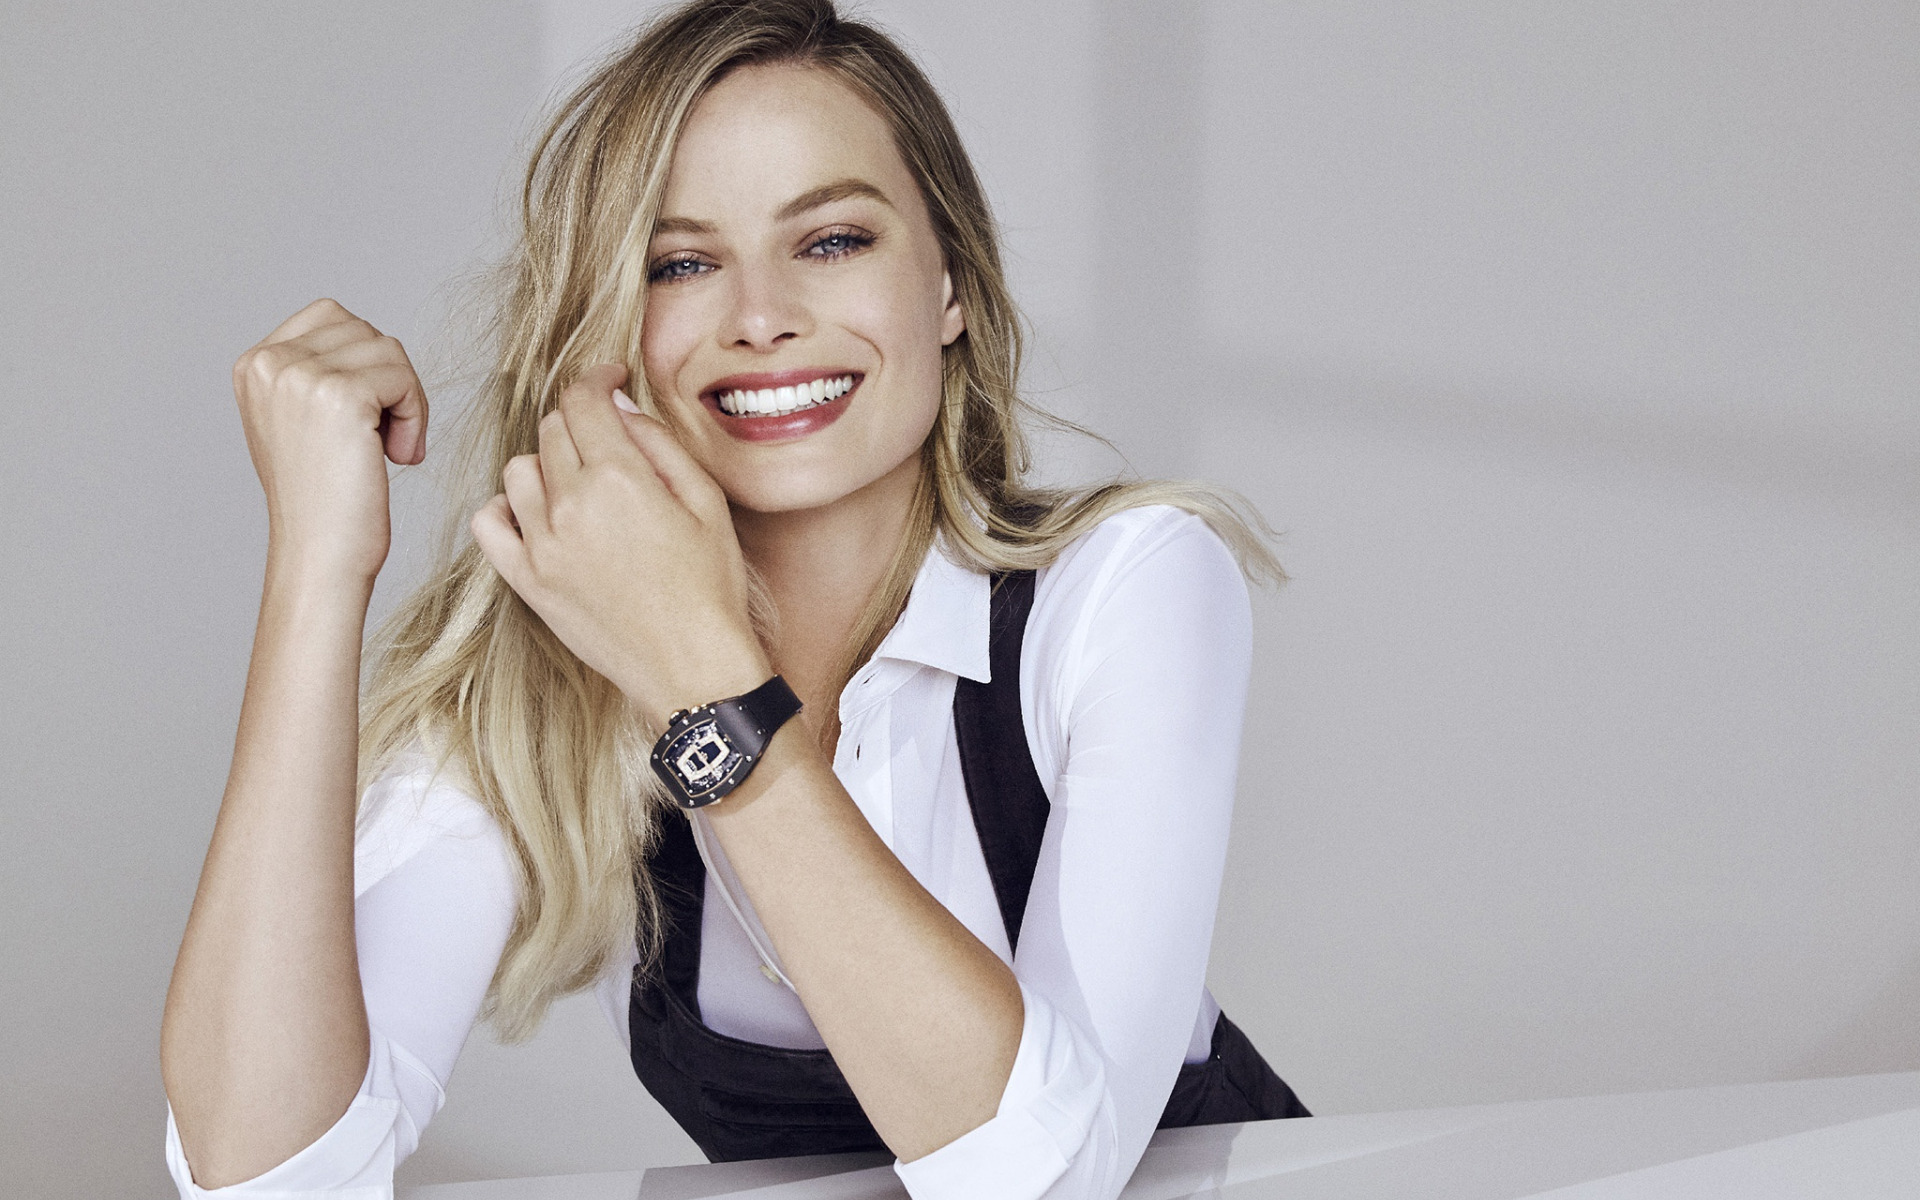 Margot Robbie, l'actrice australienne, portrait, sourire, séance de photos, la star hollywoodienne